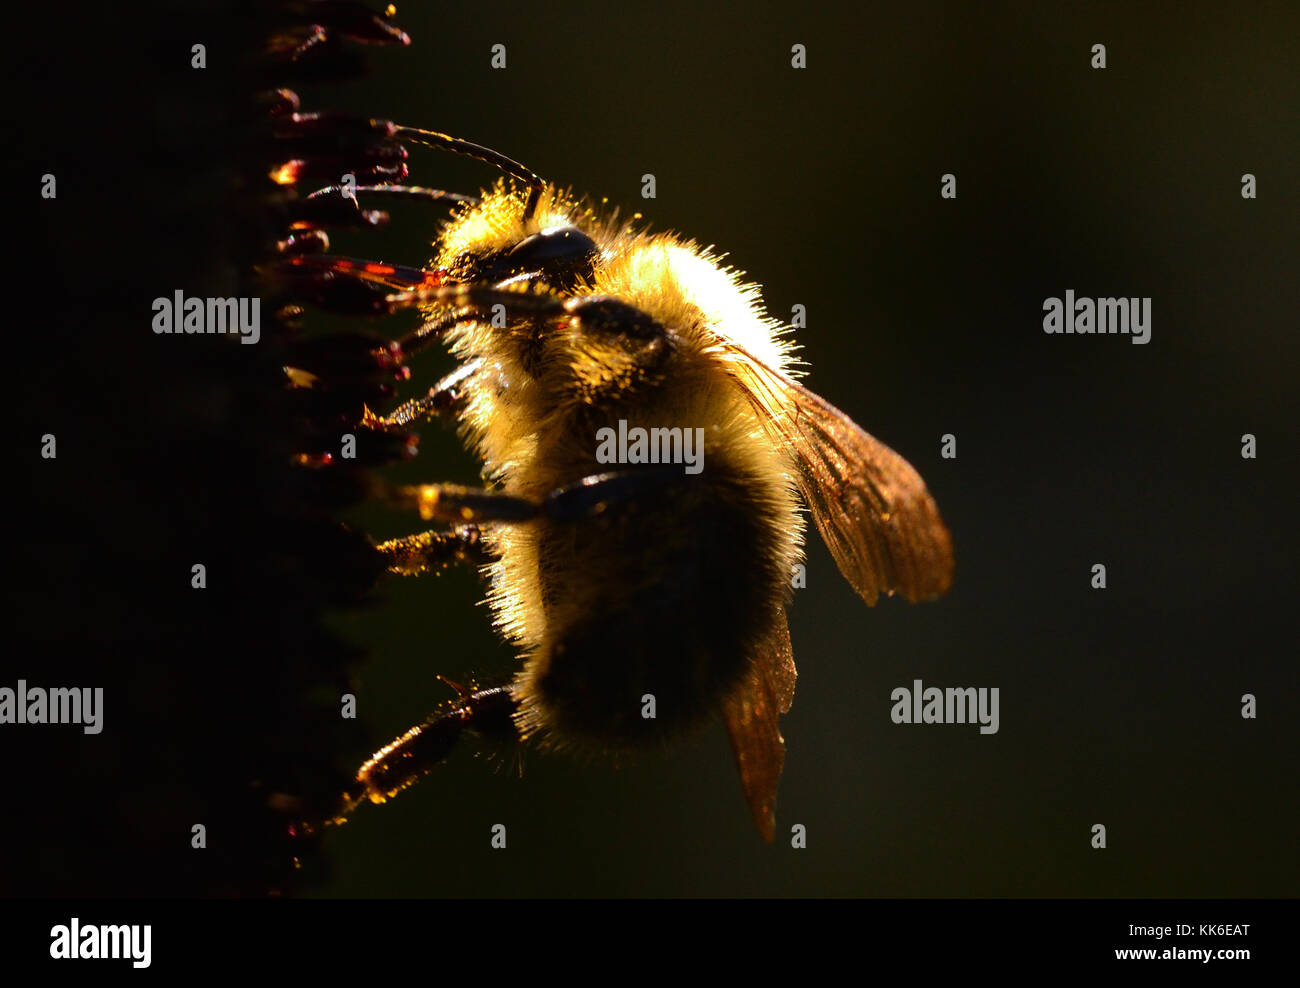 Bees - Stock Image